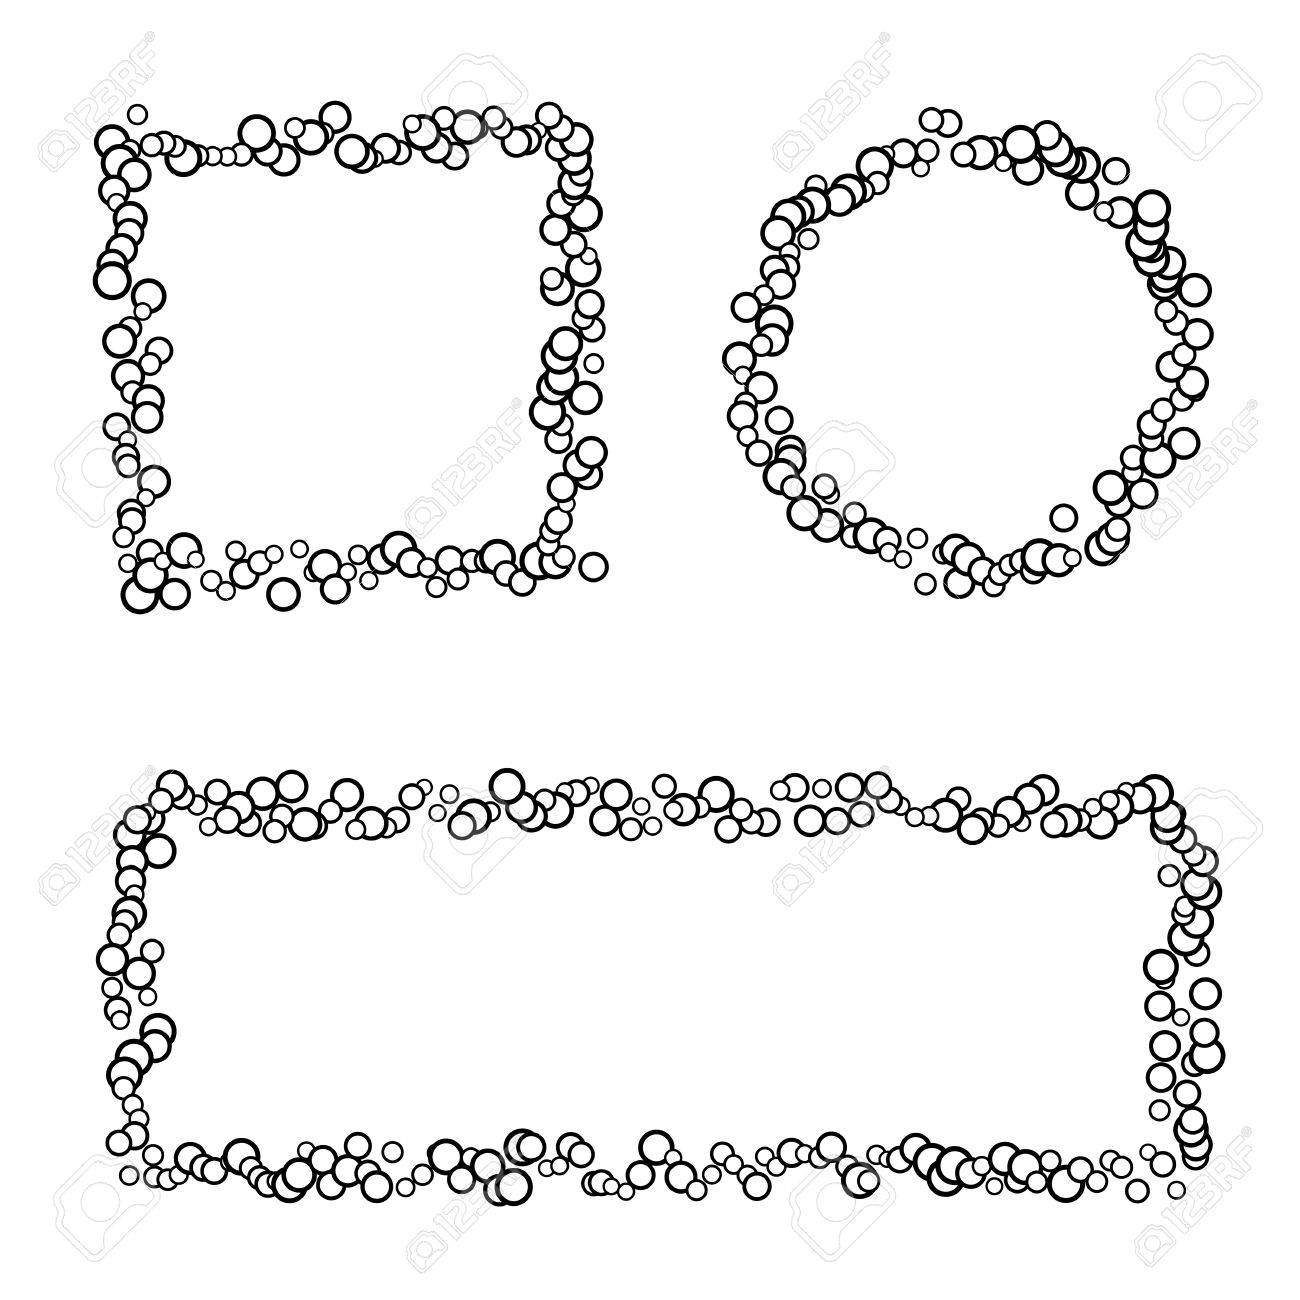 Collection Of 3 Isolated Frames Made Of Small Circles, Black ...